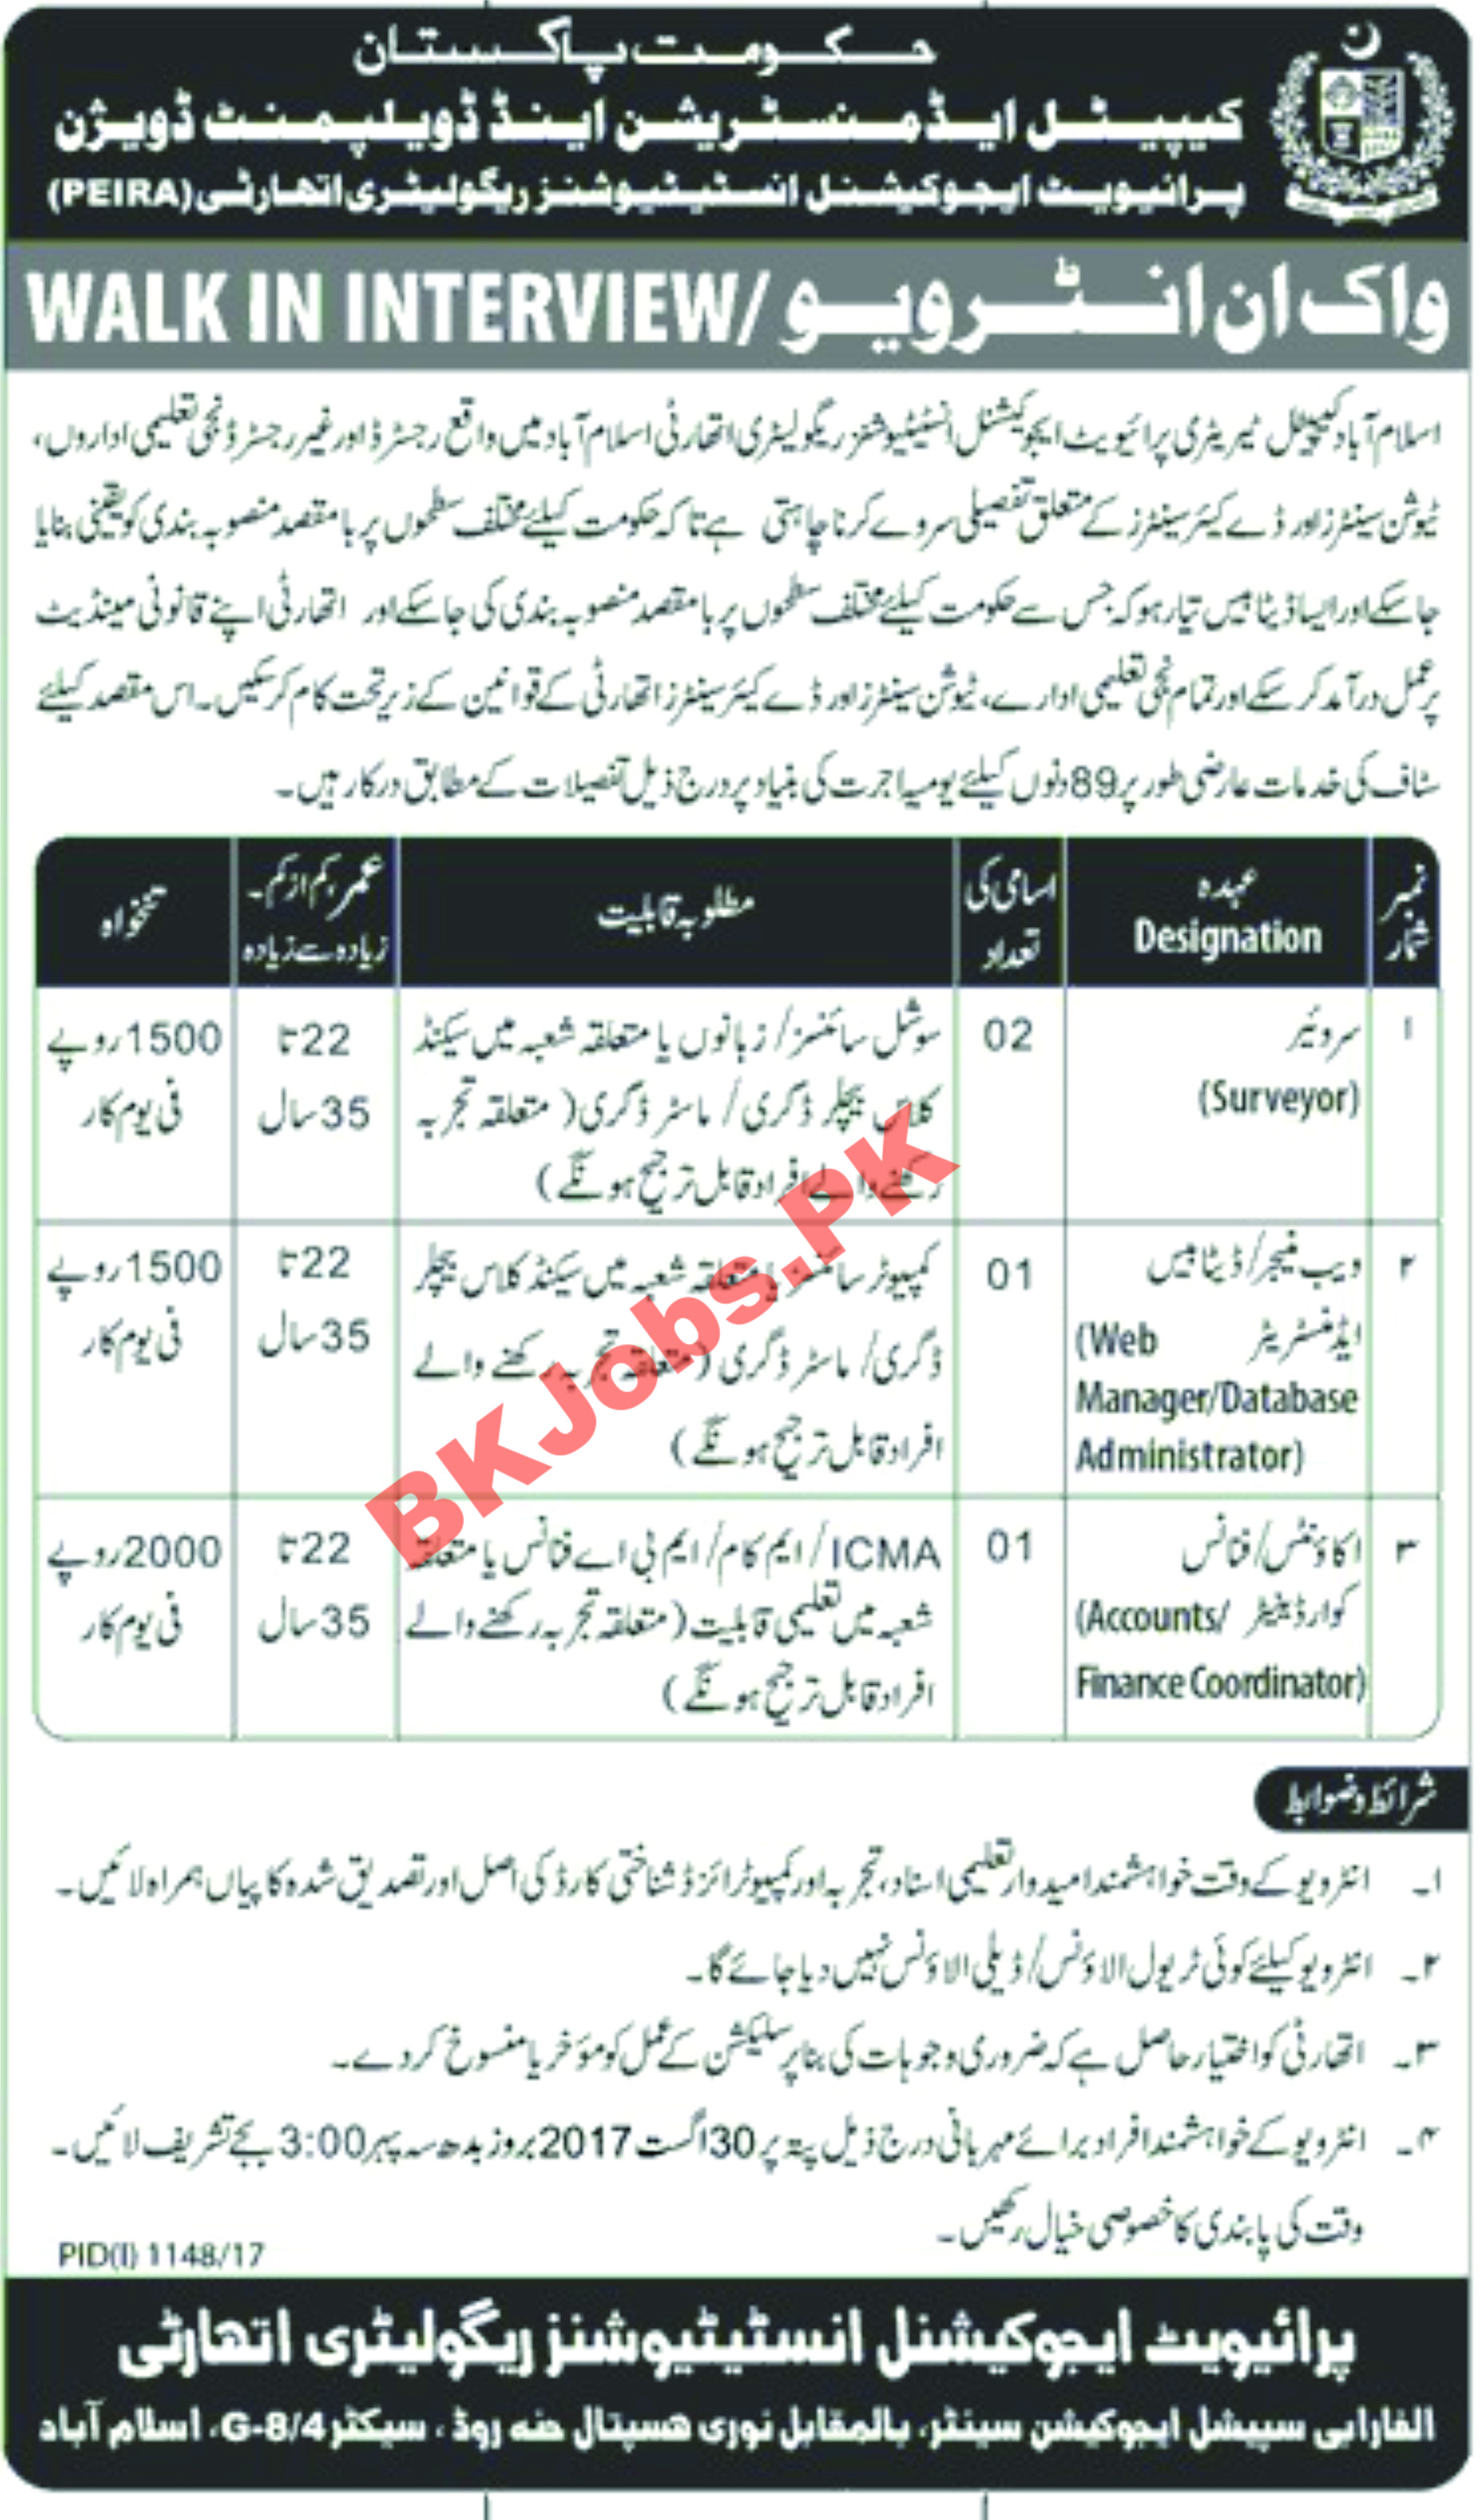 peira cadd jobs 2017 for it surveyor accountsfinance coordinator posts at private educational institutions regulatory authority